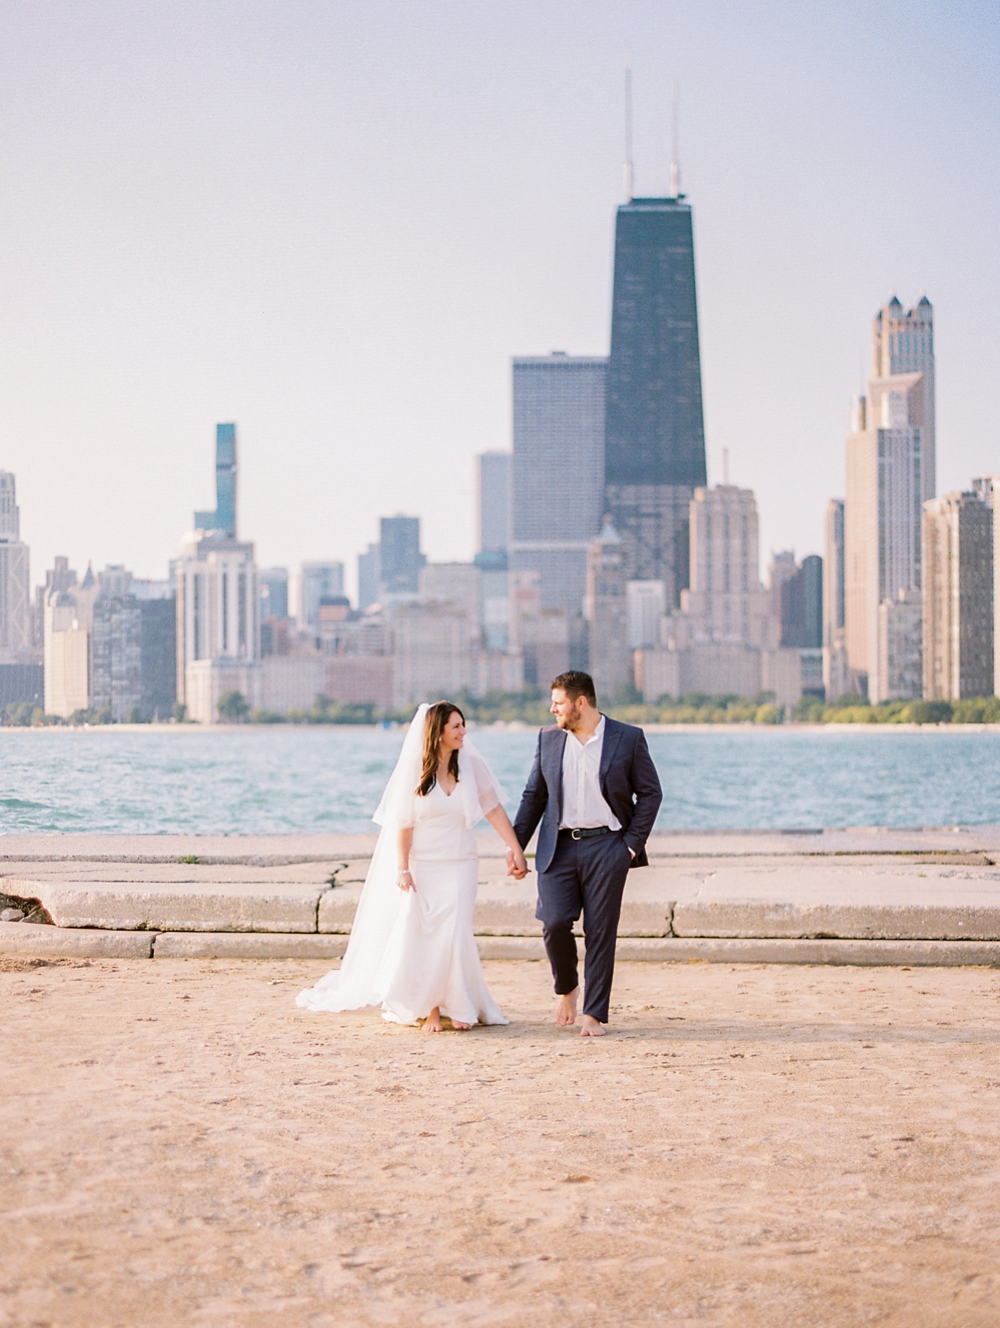 Kristin-La-Voie-Photography-CHICAGO-WEDDING-PHOTOGRAPHER-92